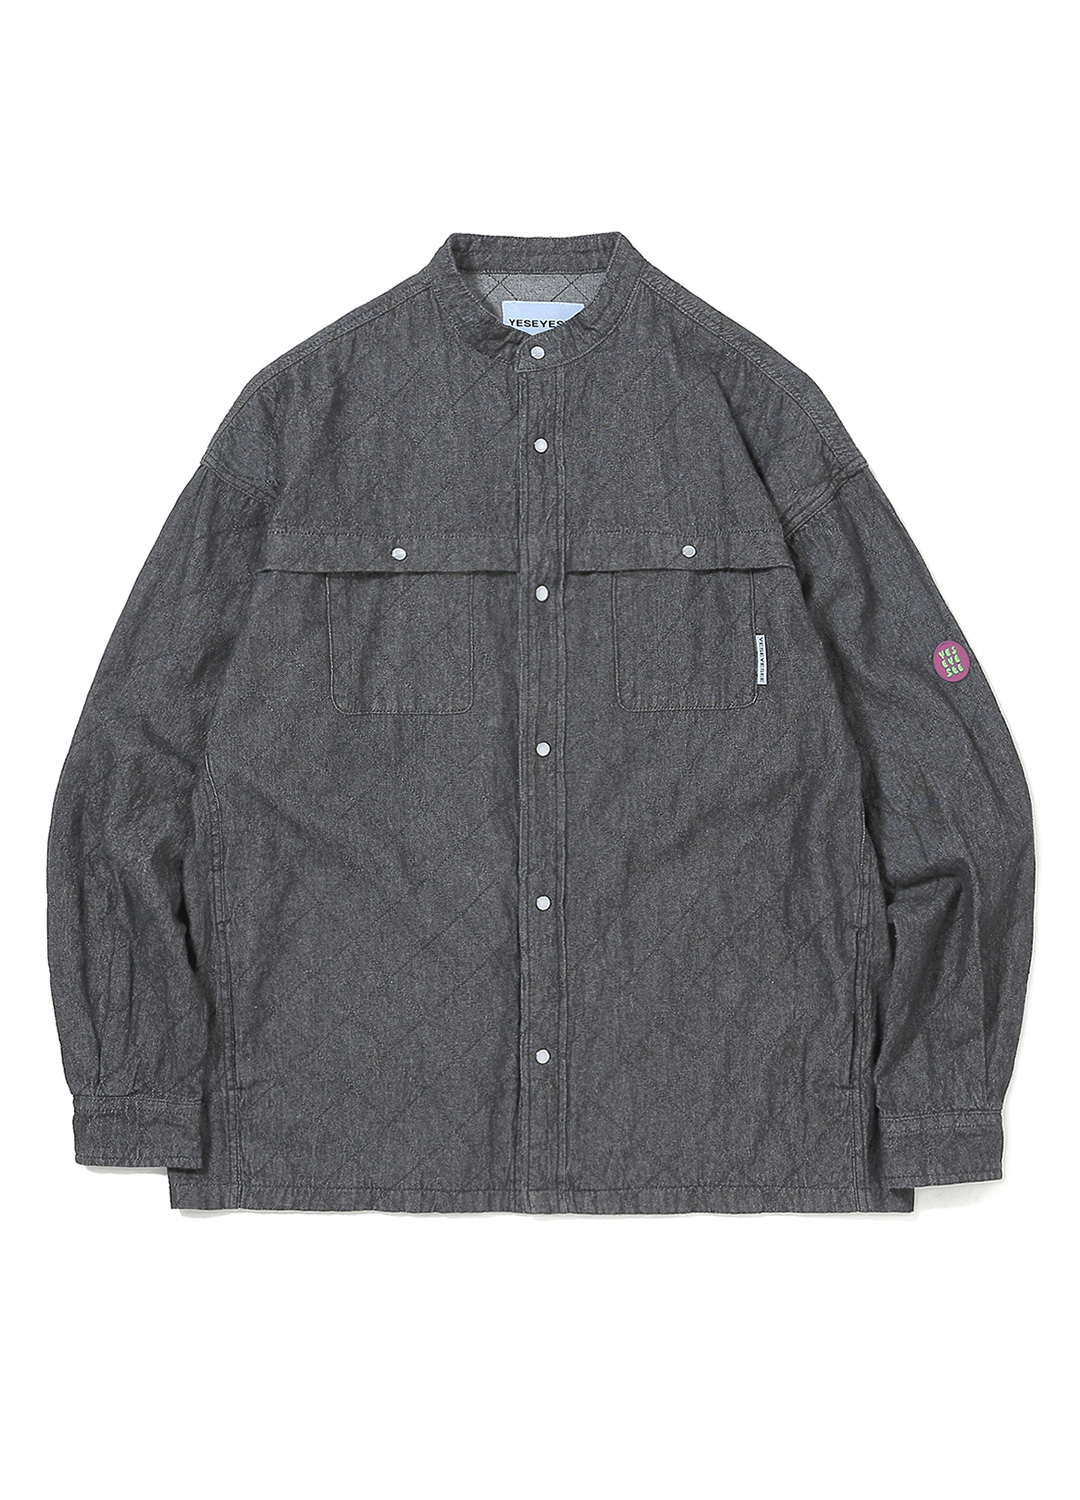 Net Denim Shirts Black